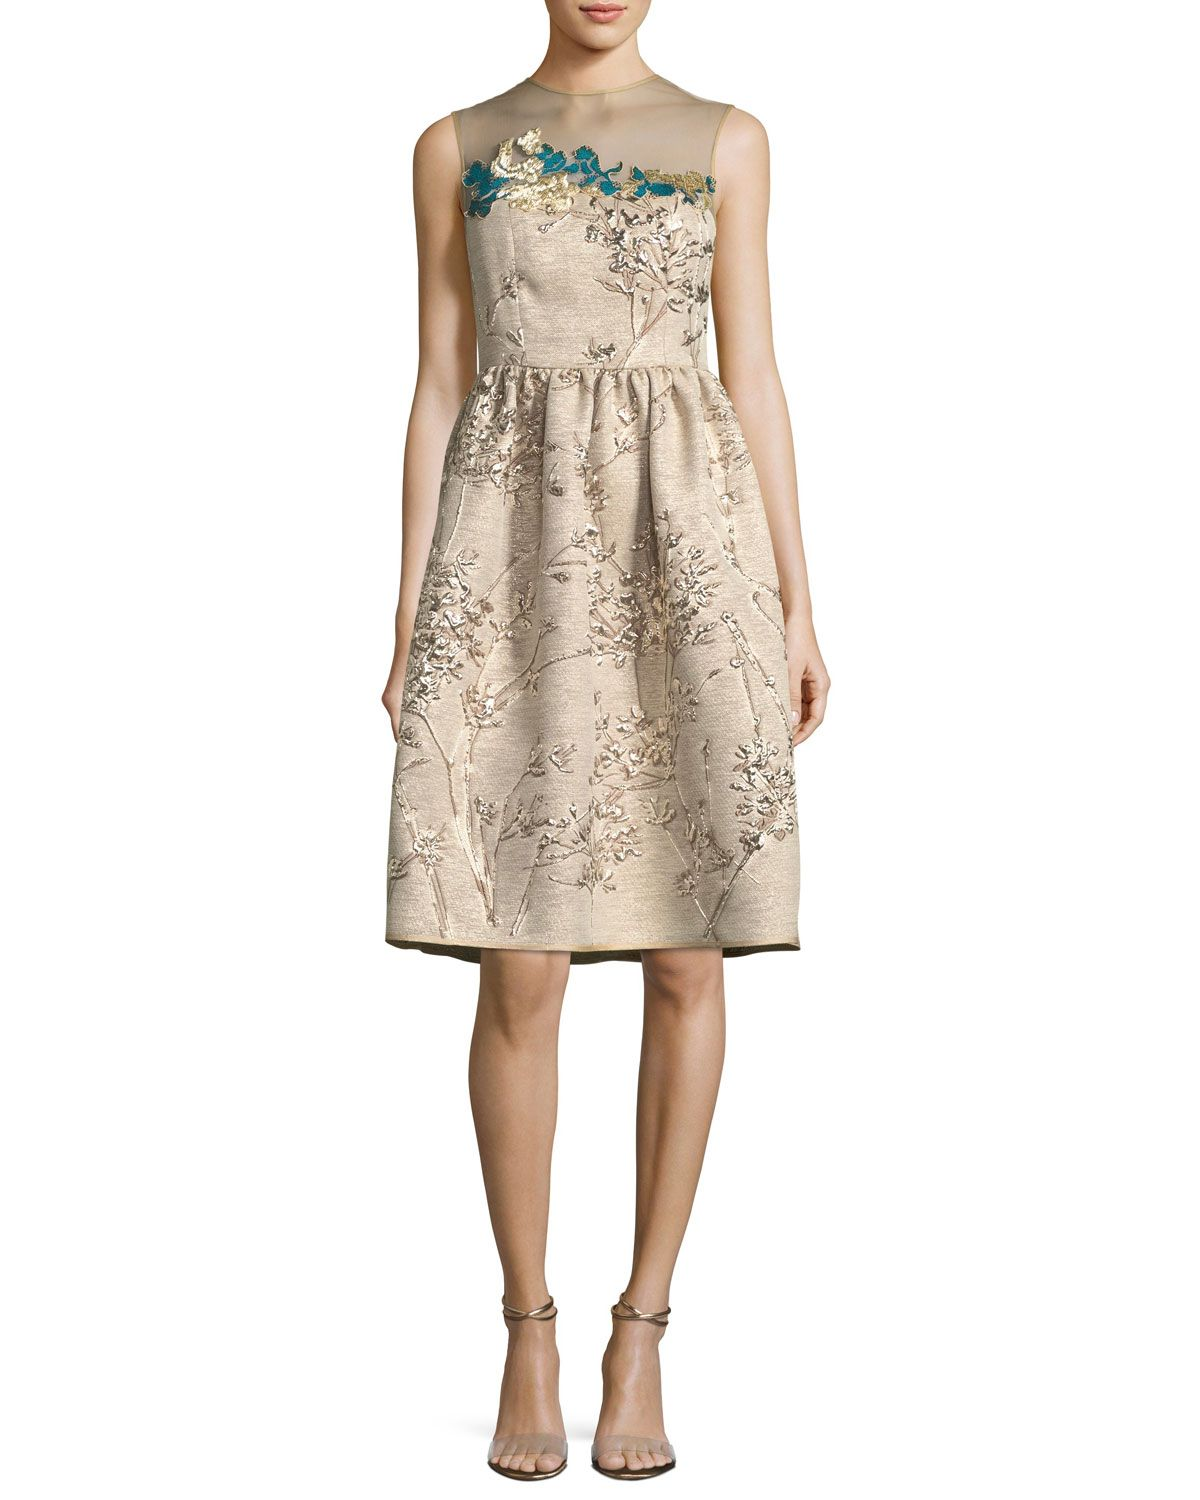 Talbot Runhof Ponnel Sleeveless Twig Silk Jacquard Cocktail Dress With Floral Embroidery Cocktail Dress Lace Cocktail Dress Silk Cocktail Dress [ 1500 x 1200 Pixel ]